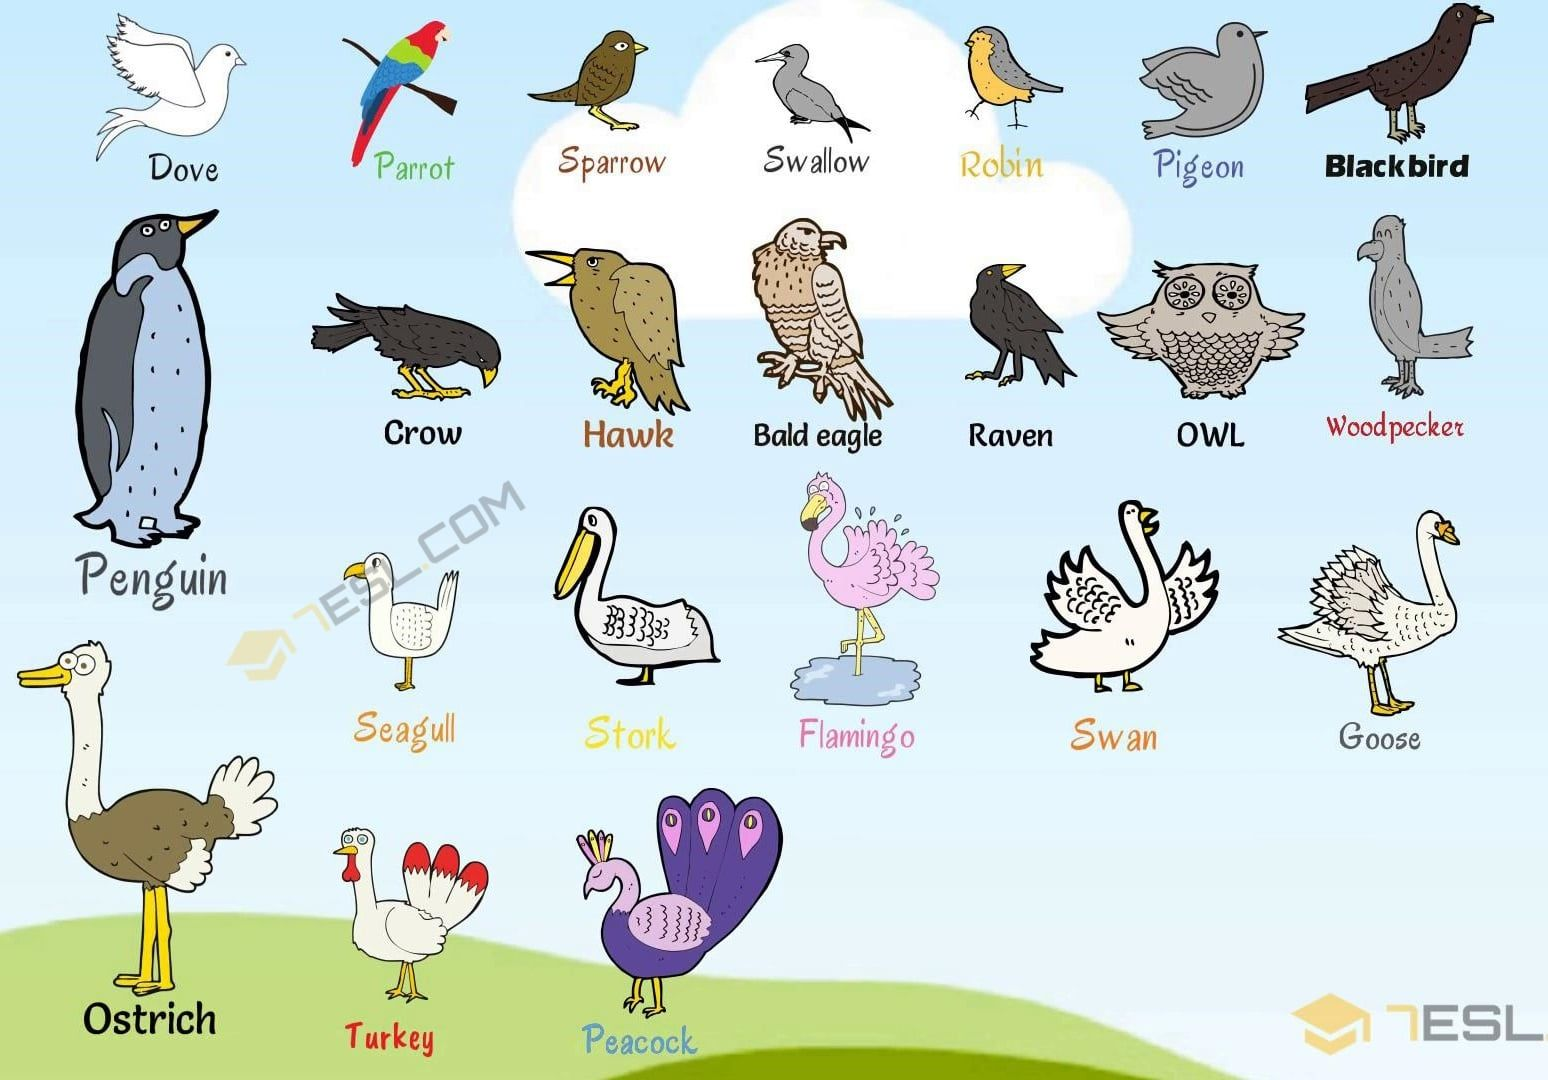 Bird Names List Of Birds With Useful Birds Images